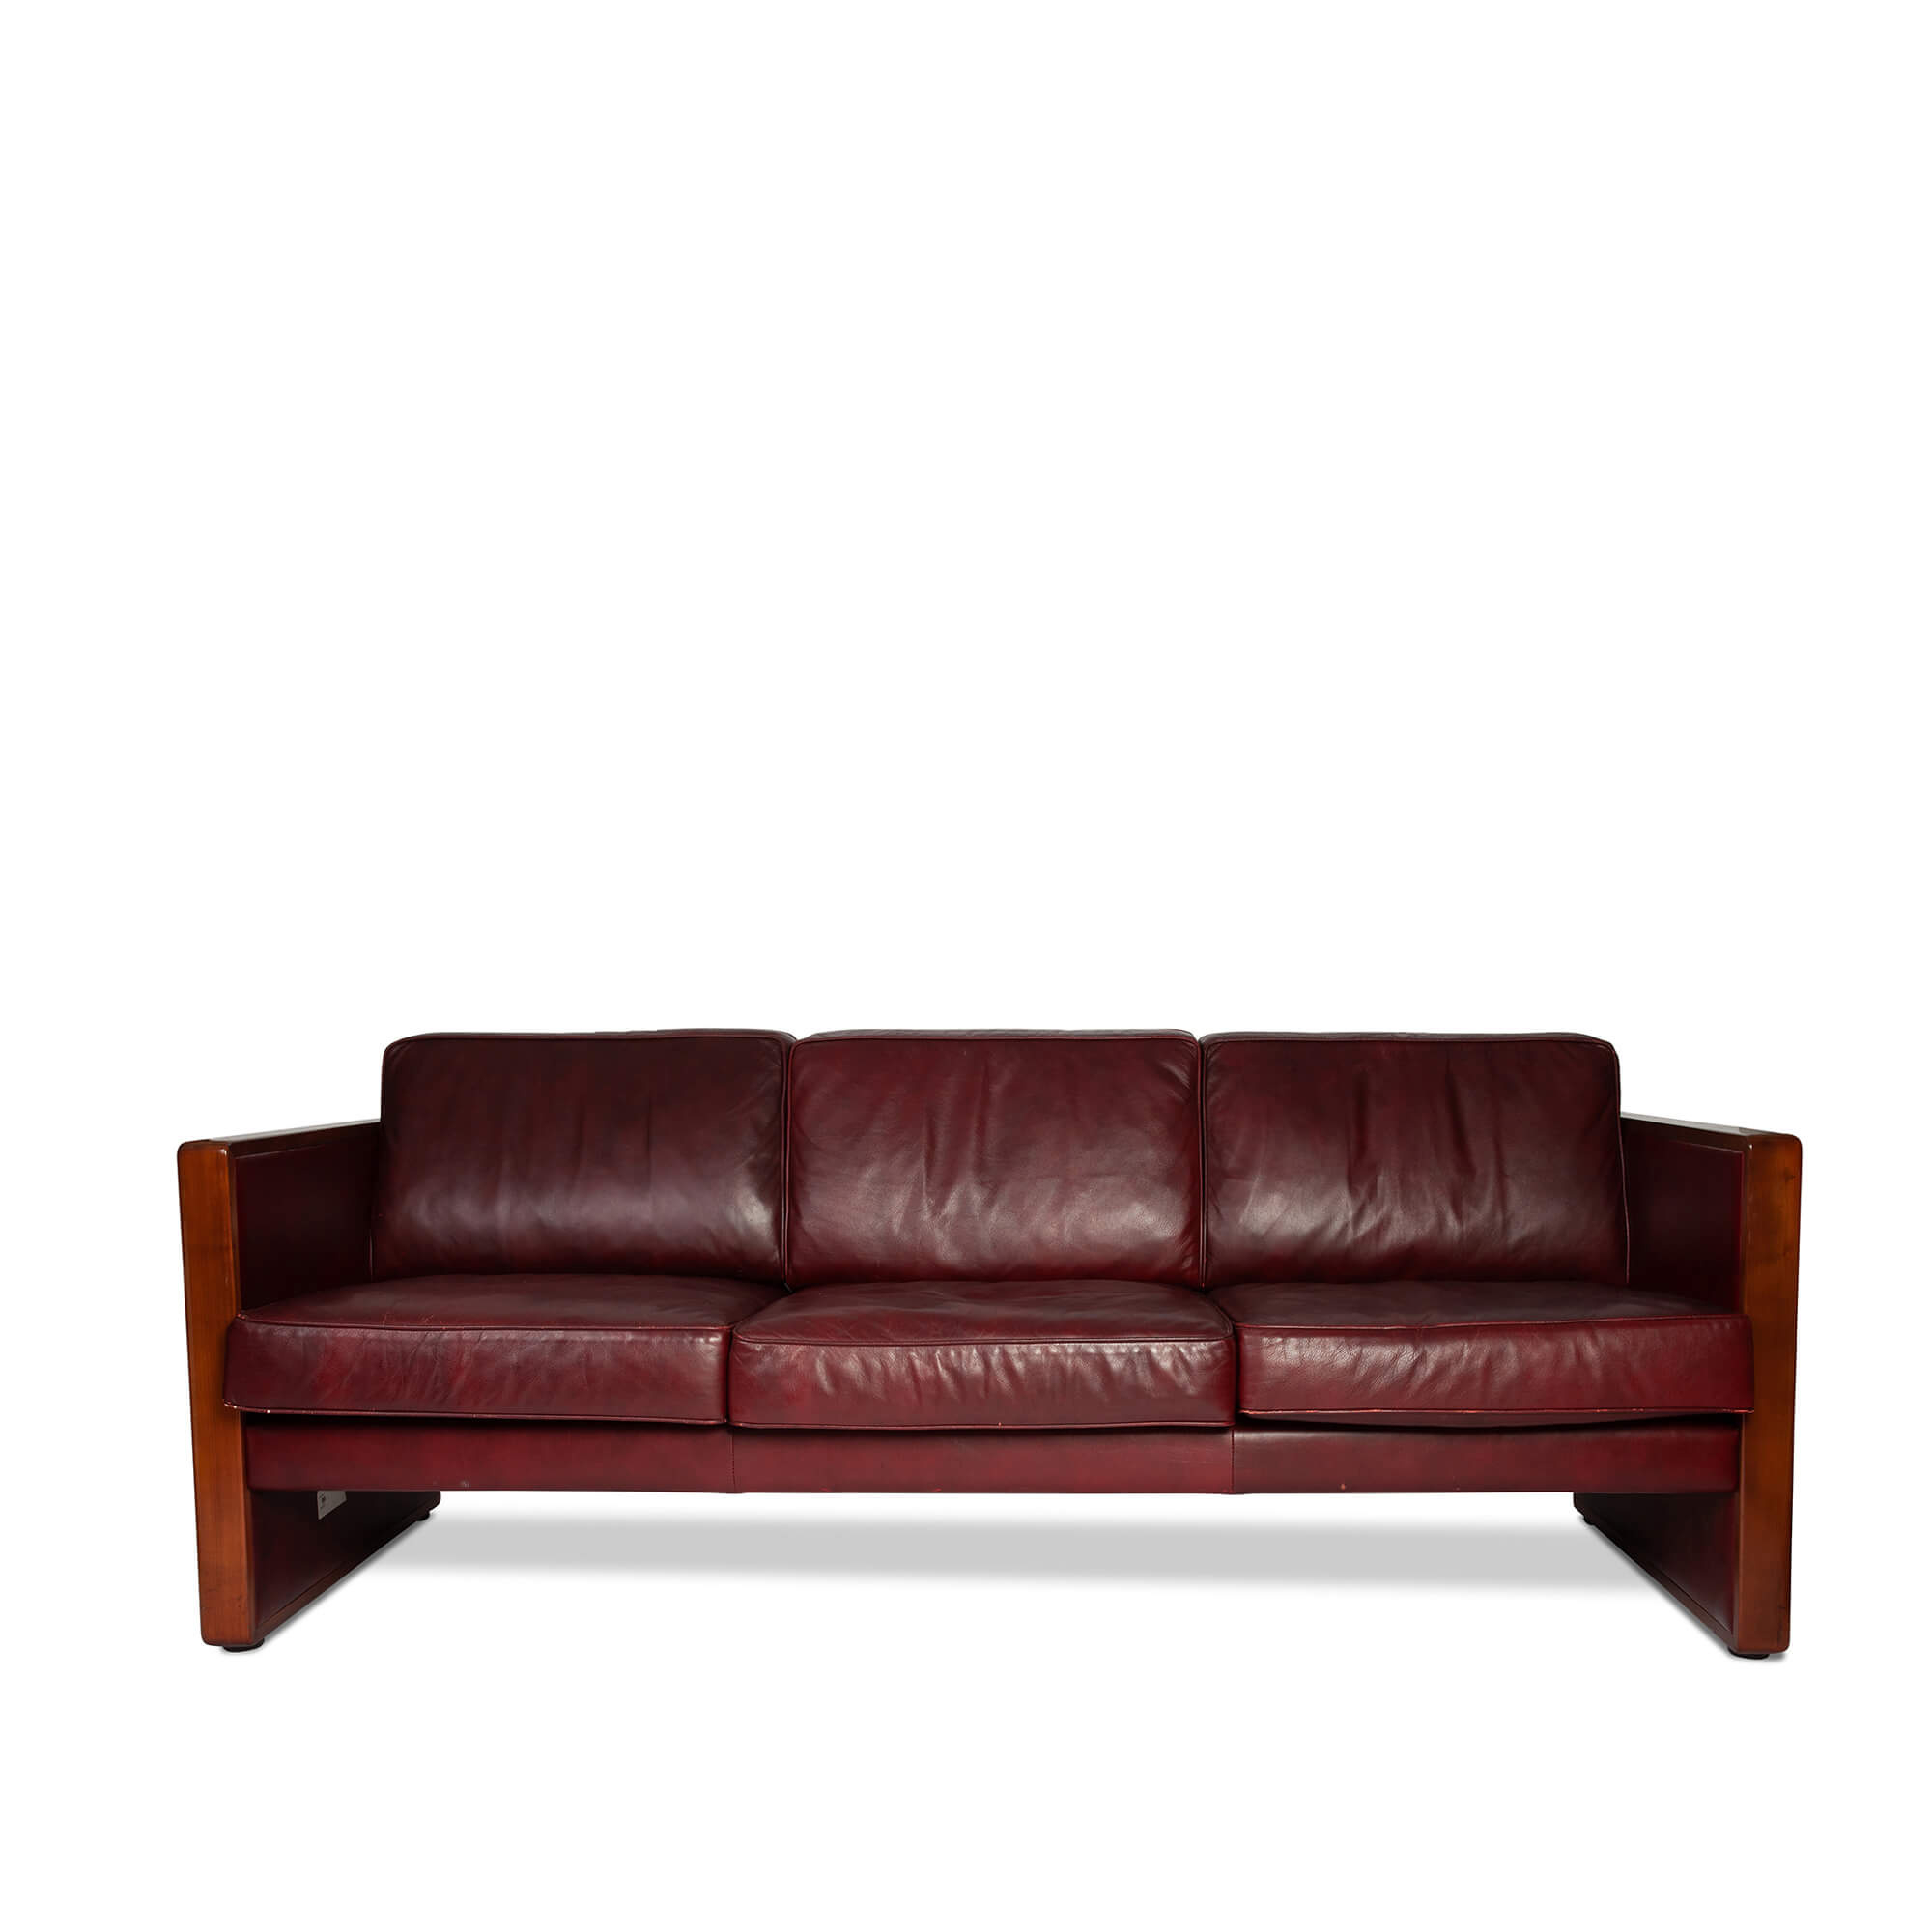 Vintage Walter Knoll Leather Sofa For Walter Leather Sofa Chairs (View 6 of 25)